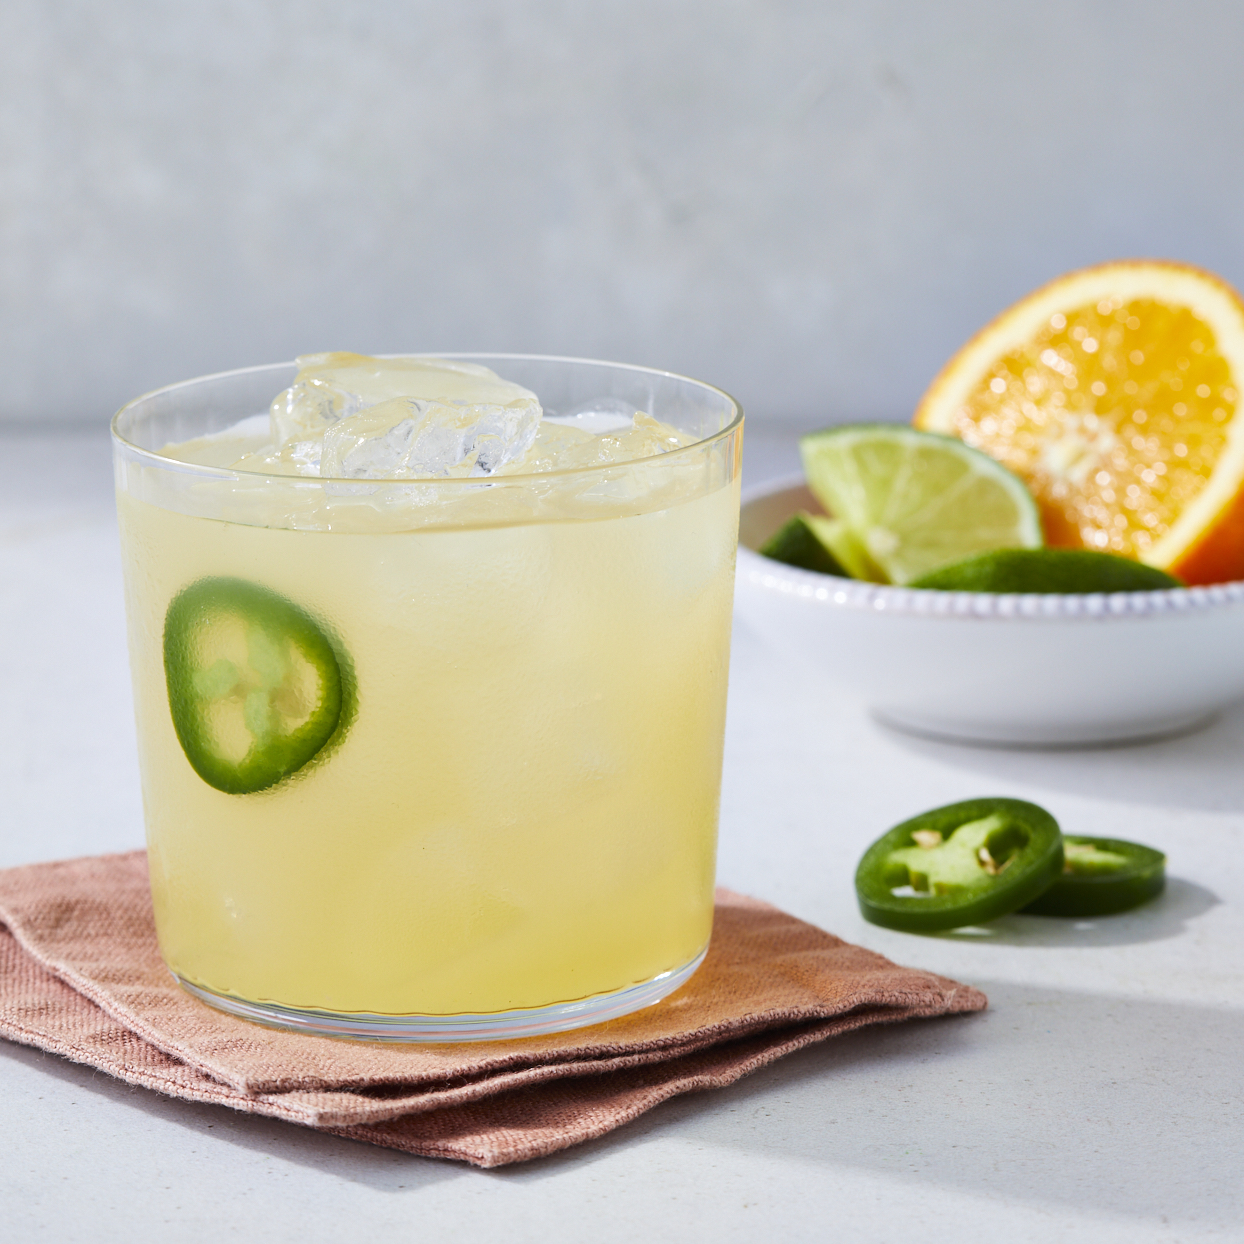 5 Simple Tips to Lighten Up Your Favorite Cocktails